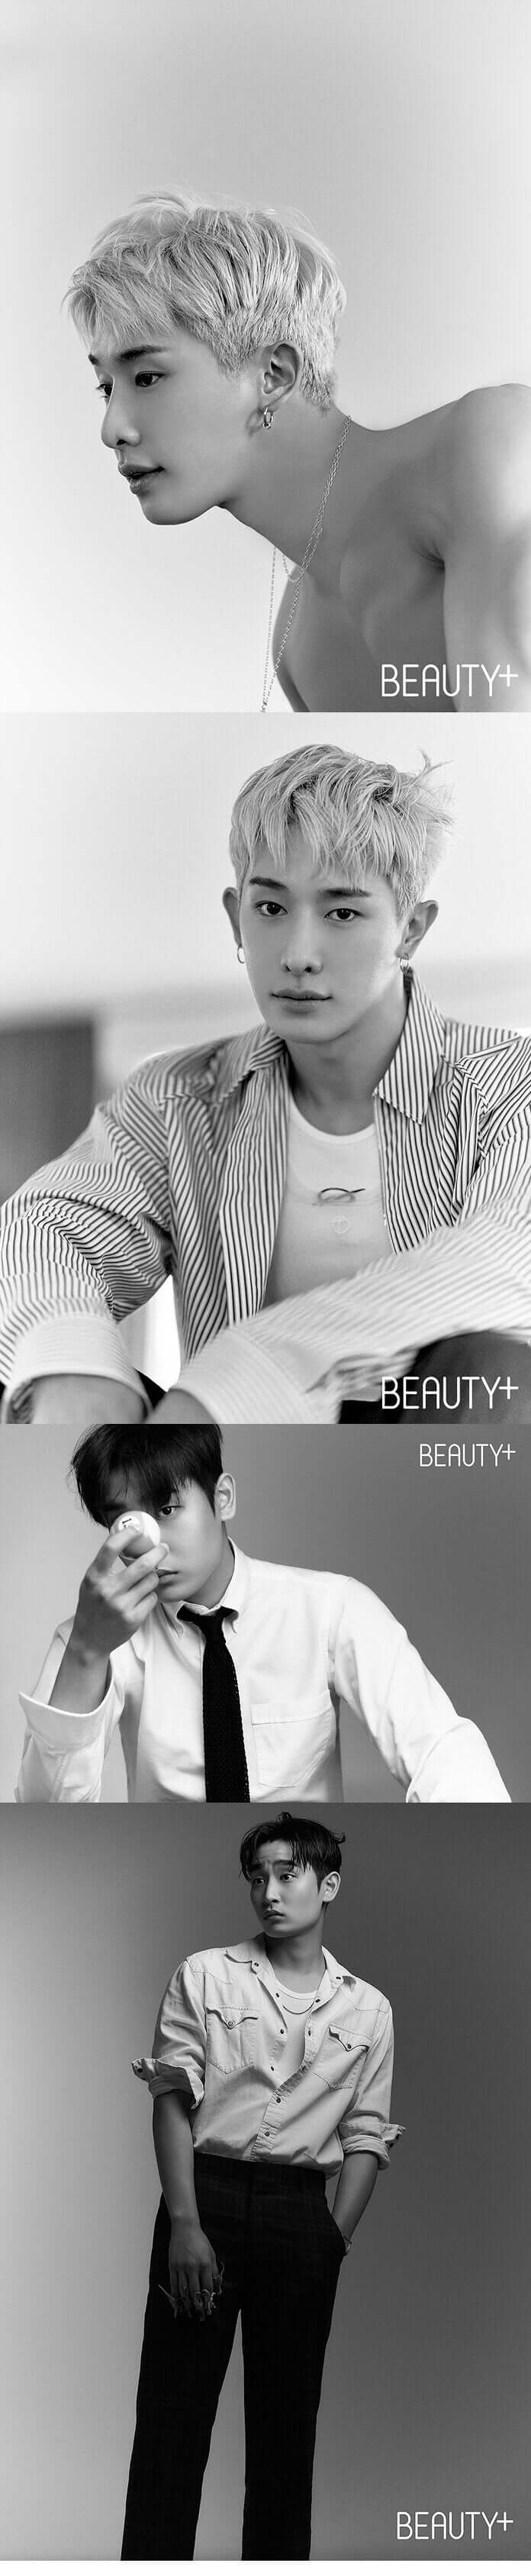 Beauty+ October 2021 Issue (Cover: Cha Eun Woo)